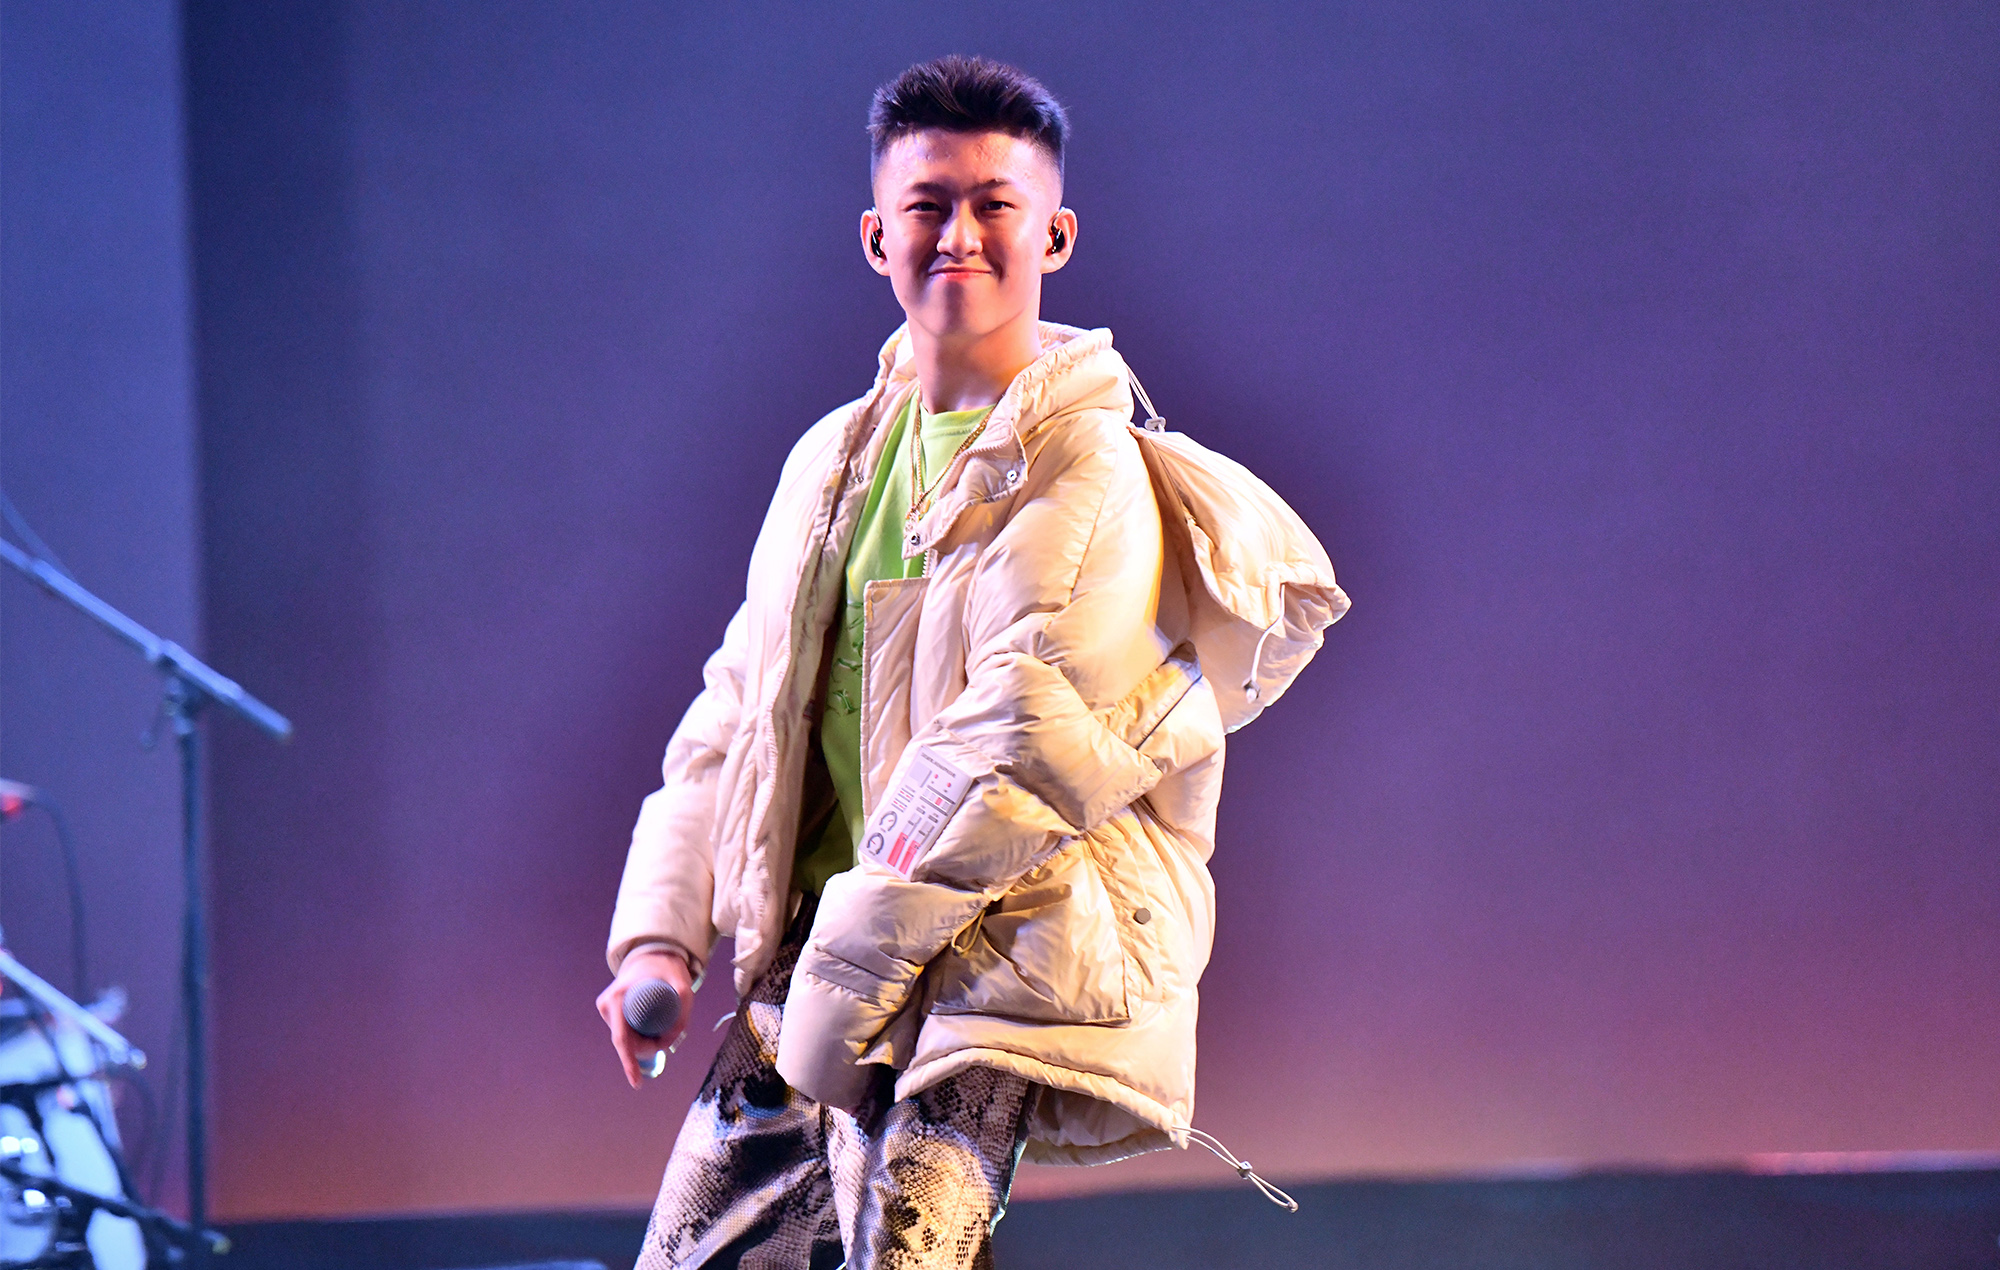 www.nme.com: 88rising inks deal to develop television series and film projects with Rich Brian and Dumbfoundead